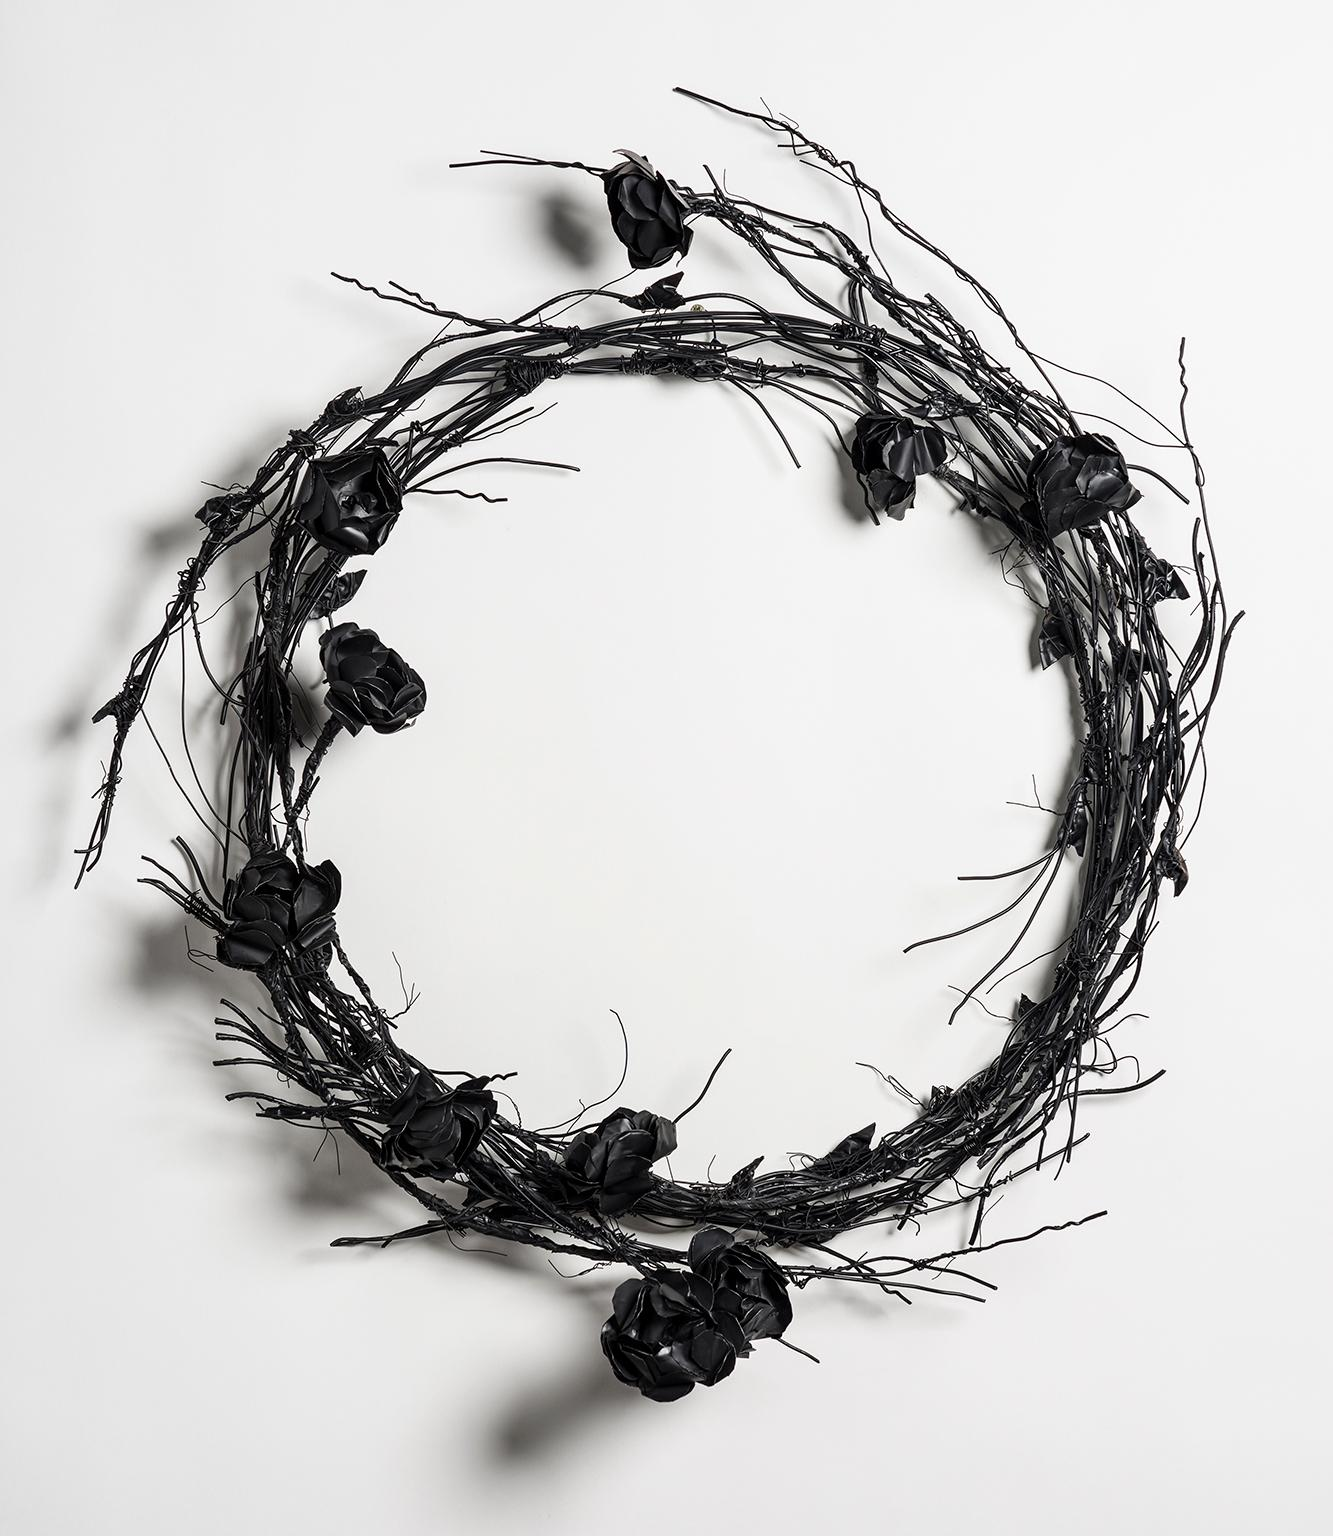 Sculpture of wire wreath with flowers: 'Mourning Wreath'